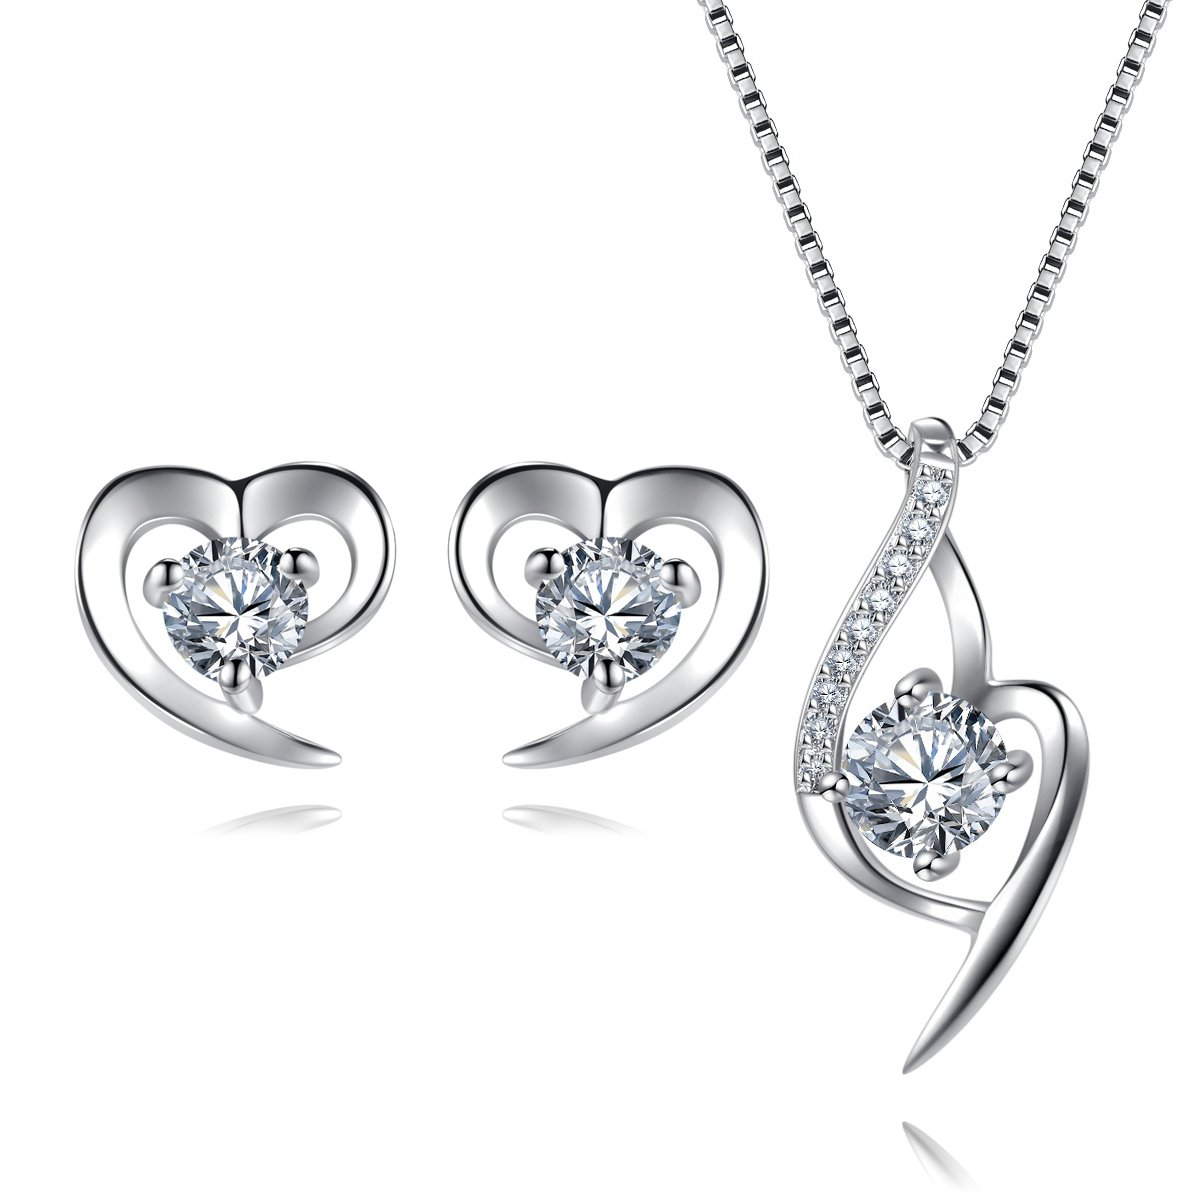 EVERU Sterling Silver Jewellery Sets for Women, Heart Pendant Necklace & Heart Earrings with Sparkle AAA Cubic Zirconia with an Exquisite Gift Box EVERU Jewelry Co. Ltd. EC-075